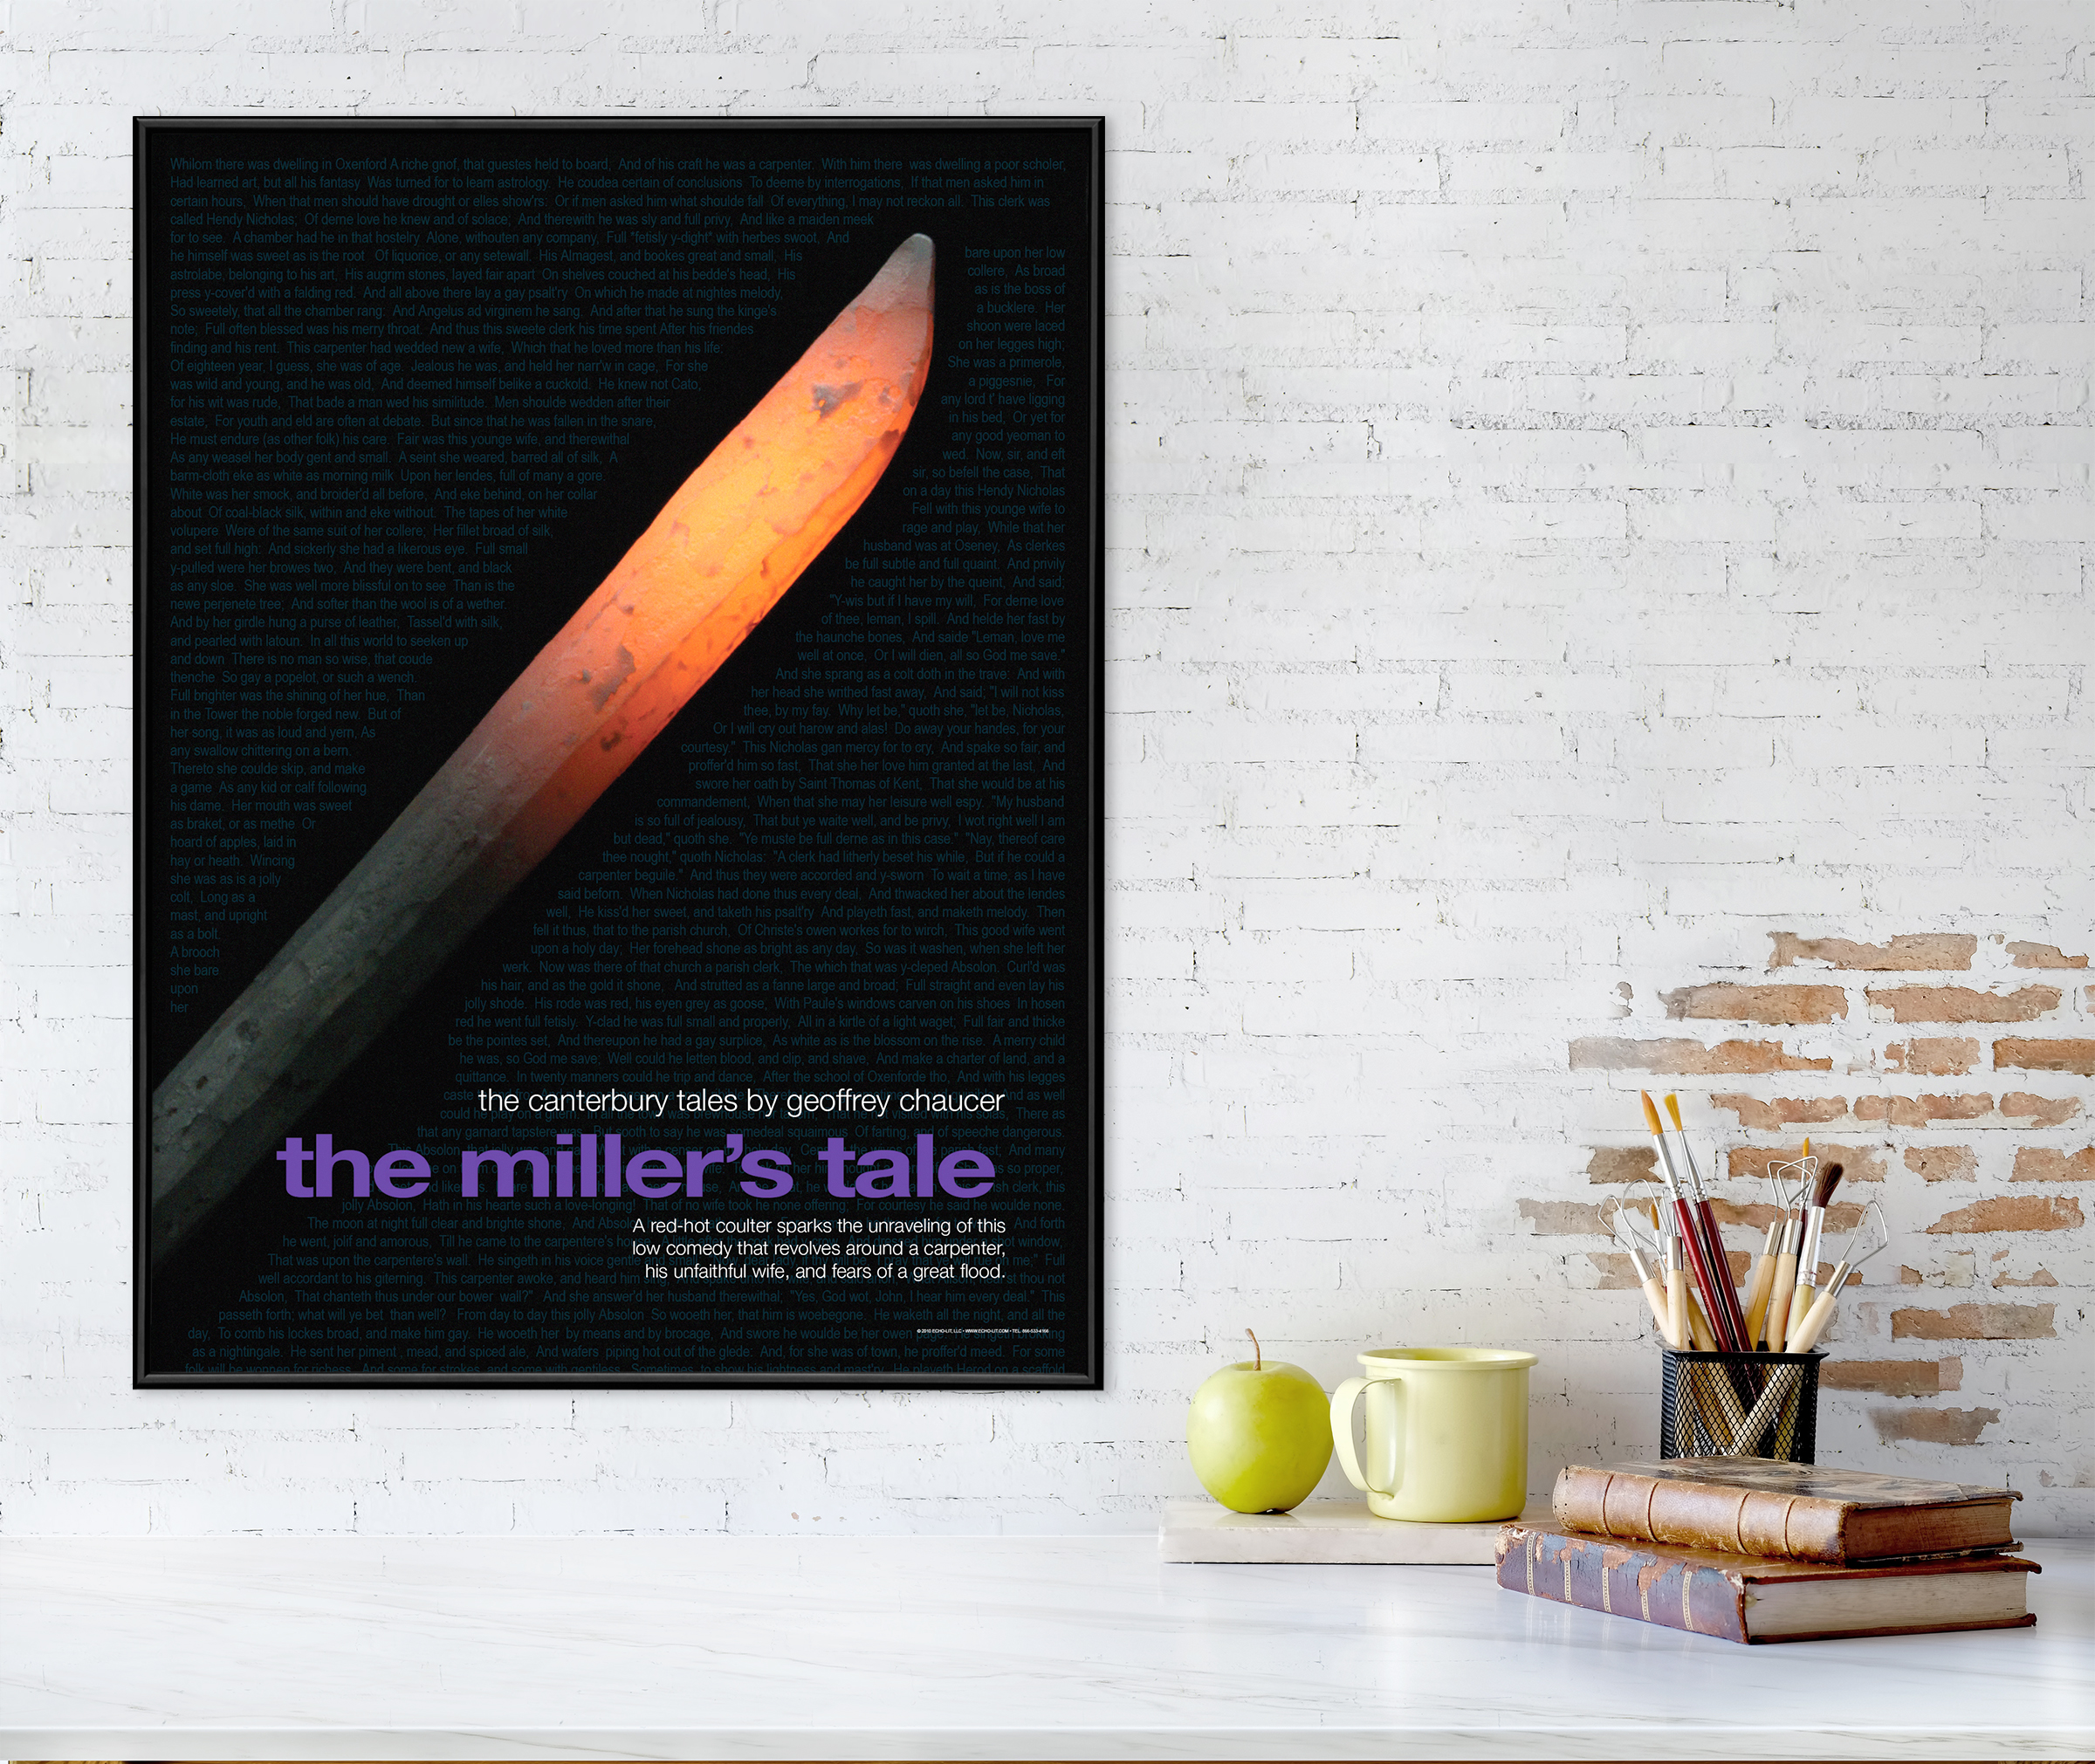 the canterbury tales movie style poster the miller s tale geoffrey chaucer literary print poster laminated or framed multiple sizes